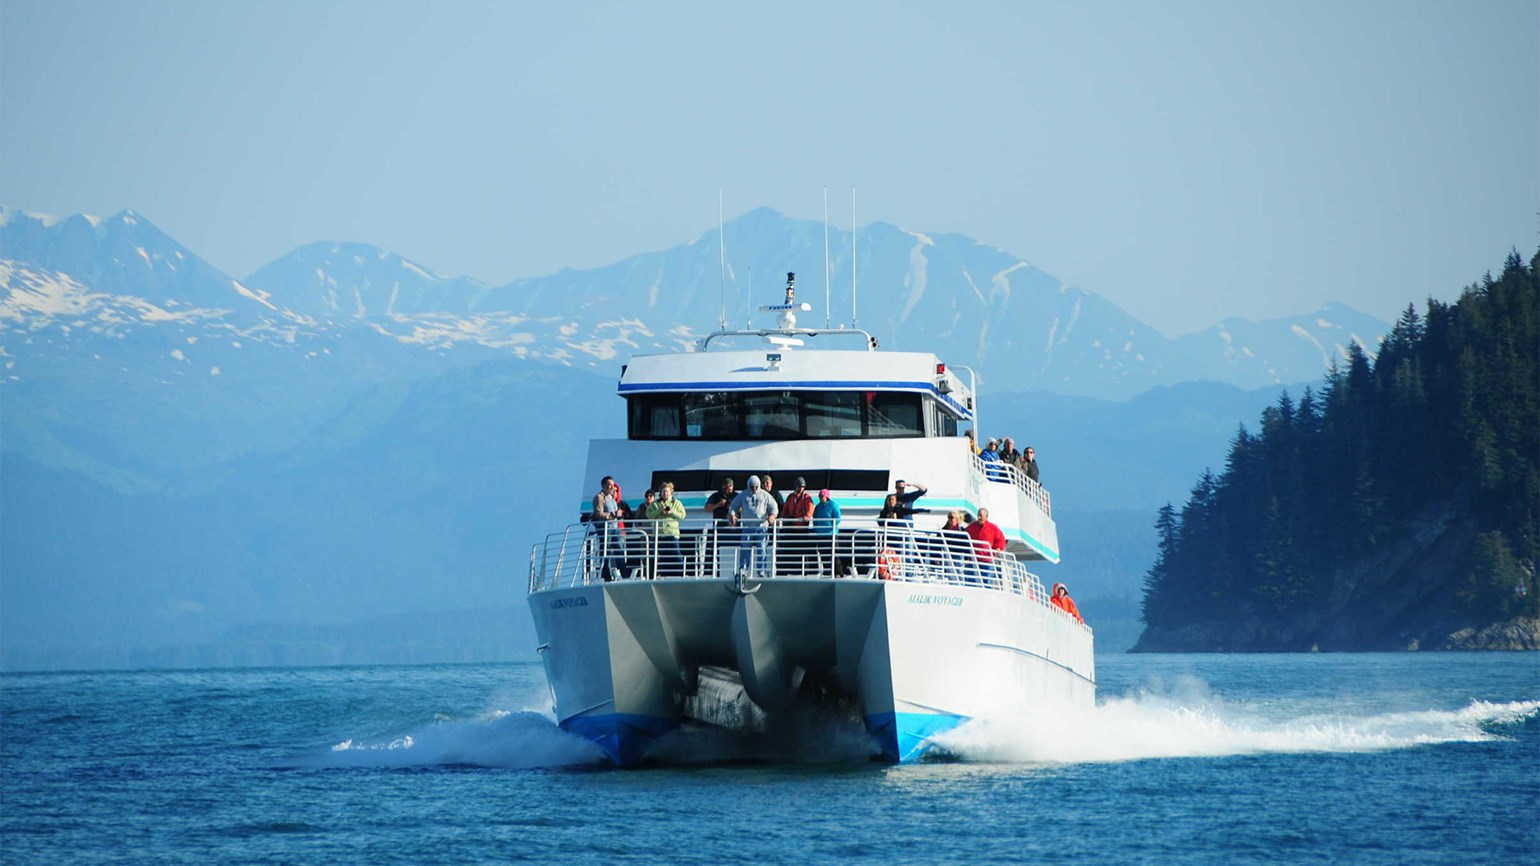 Kenai Fjords Tours offering gray whale cruises